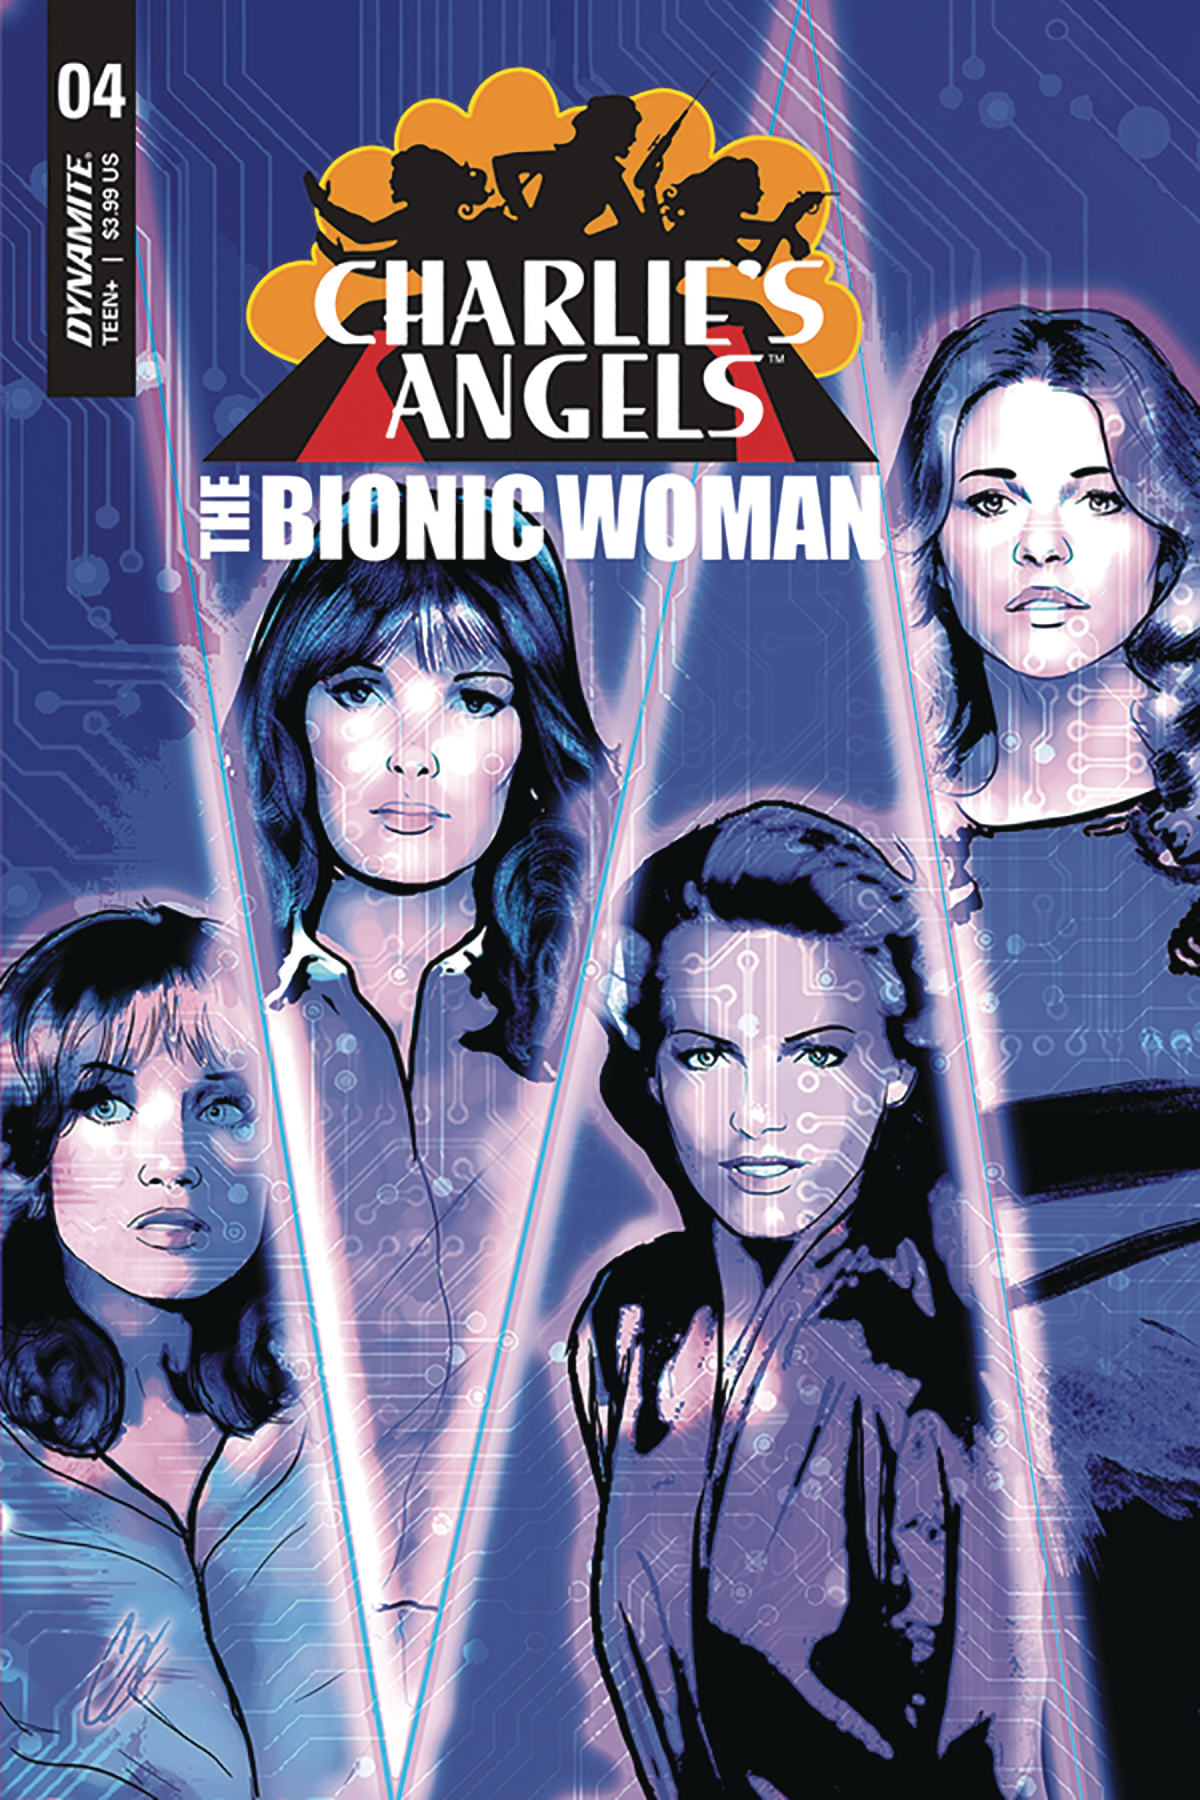 Dynamite Entertainment amp October 2019 Solicitations, dynamite  entertainment october 2019 solicitations fir… | Charlies angels, Bionic  woman, Charlies angels movie